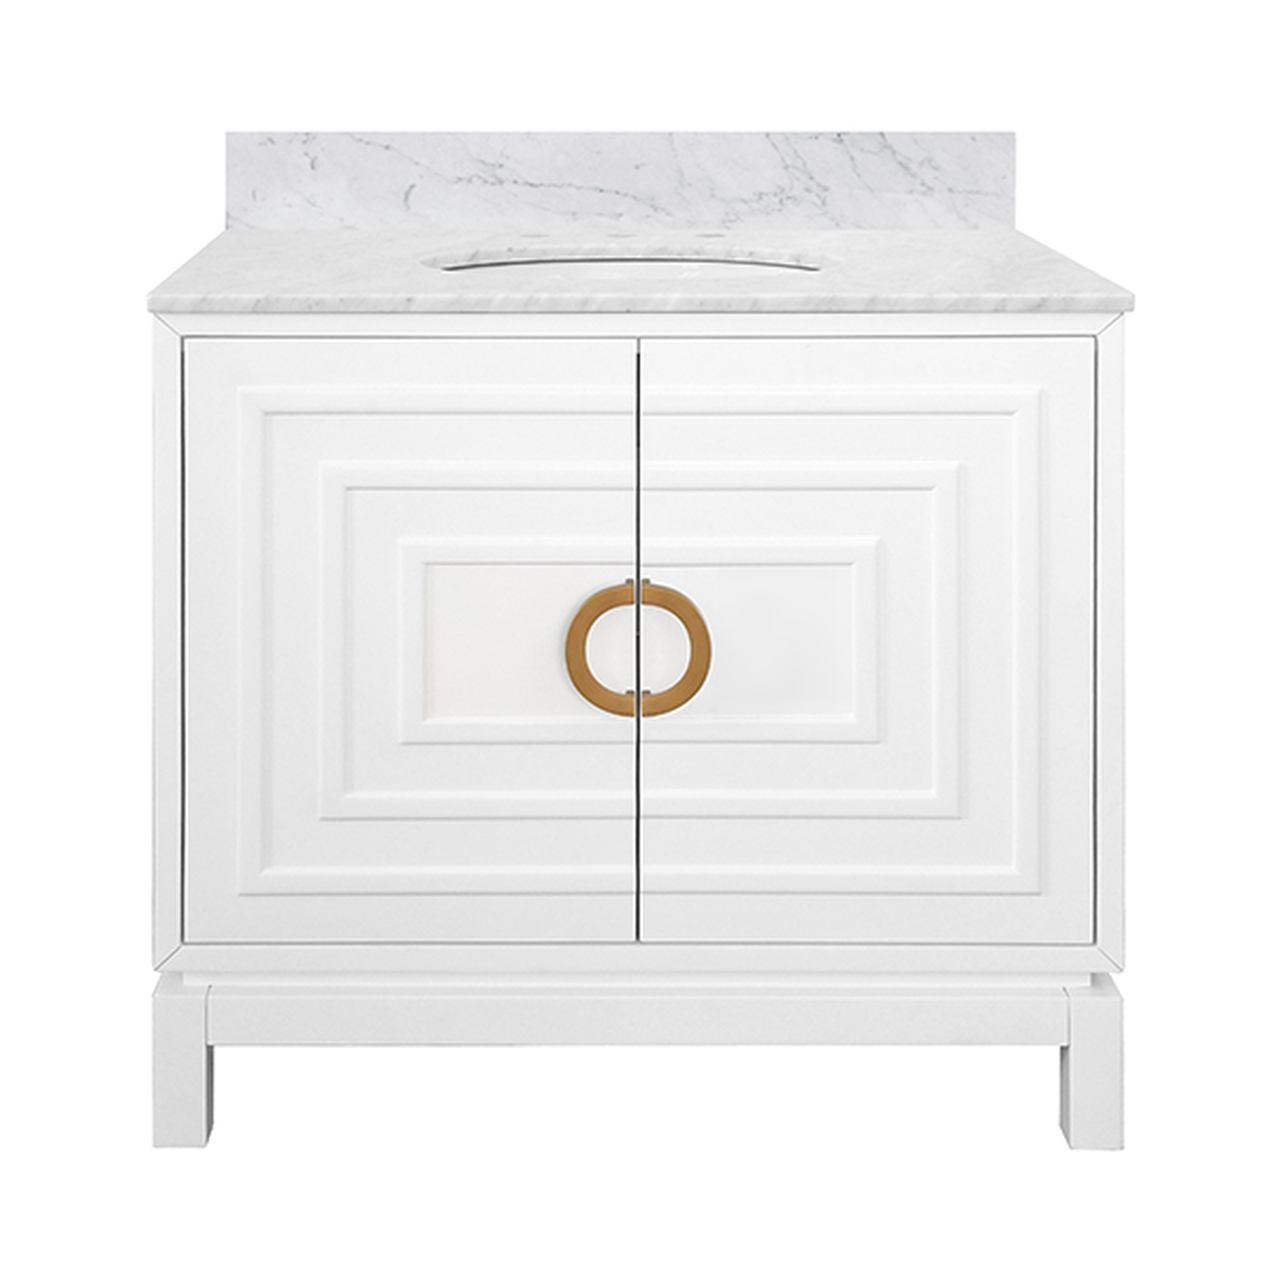 """36"""" Issac Edwards Collection Bath Vanity in Matte White Finsih with White Marble Top and Porcelain Sink"""